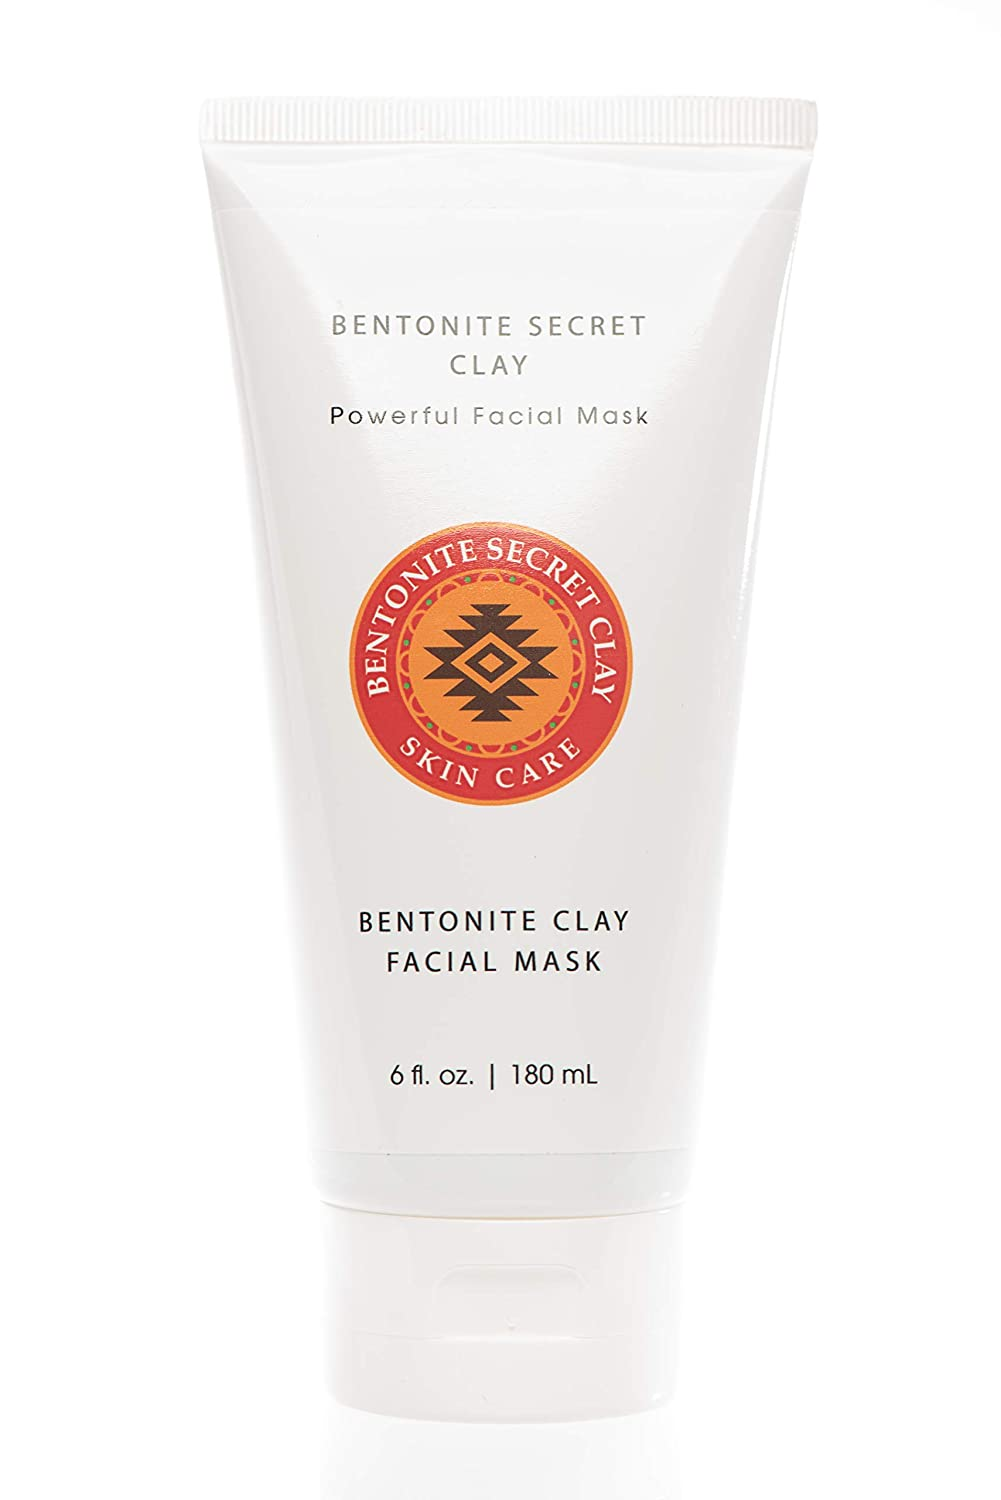 Premixed Bentonite Clay Liquid Facial Mask for Skin Care – Nourish and Heal Your Skin, Absorb Oil and Toxins, and Shrink Pores for More Radiant and Youthful Complexion